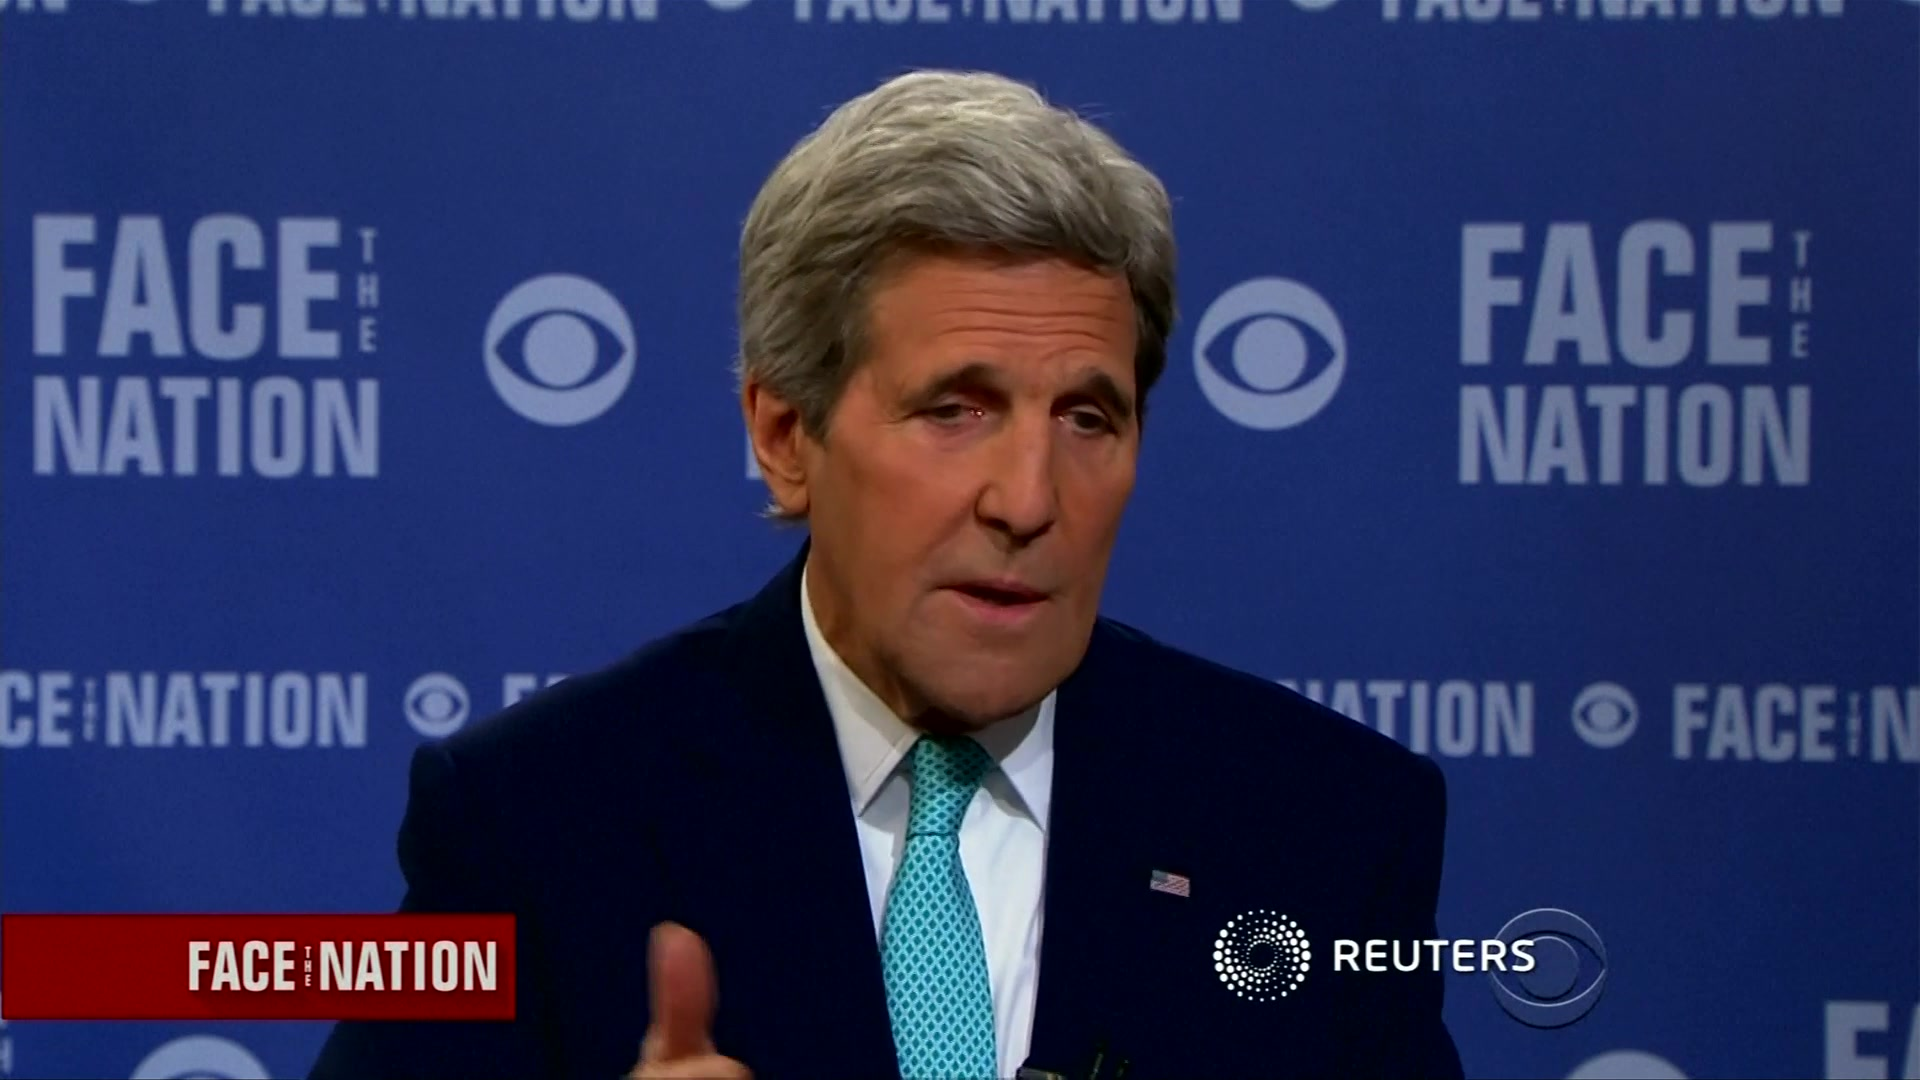 Foreign Leaders 'Shocked' at U.S. Rhetoric on Muslims: Kerry